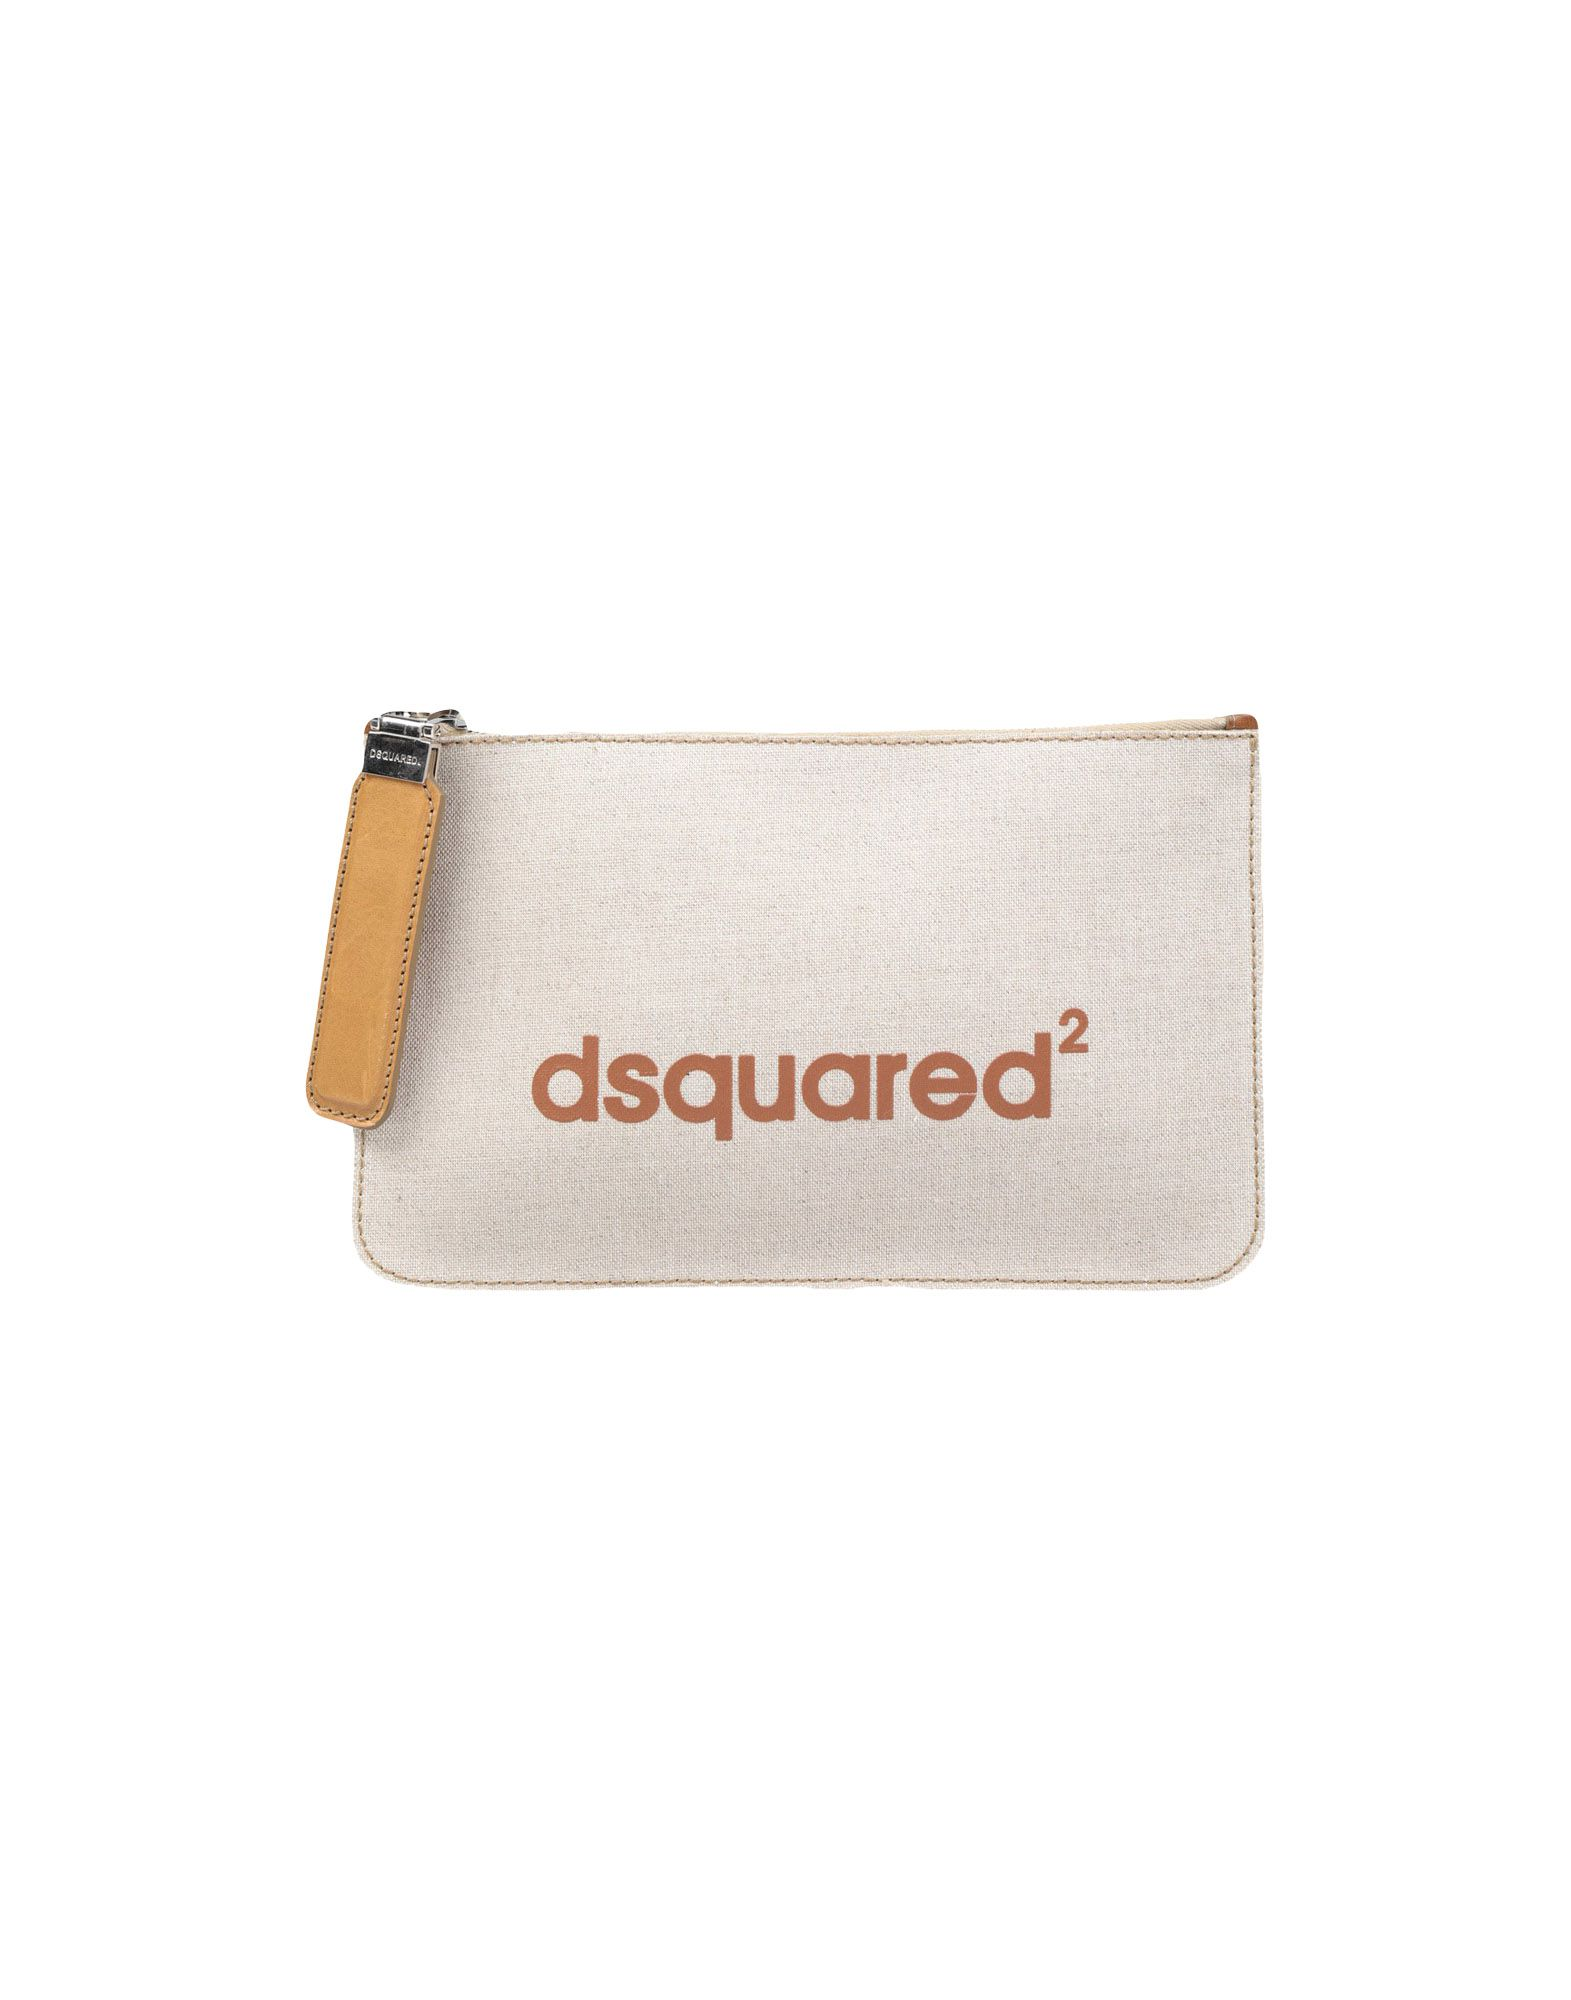 DSQUARED2 Beauty case hydrogen beauty case